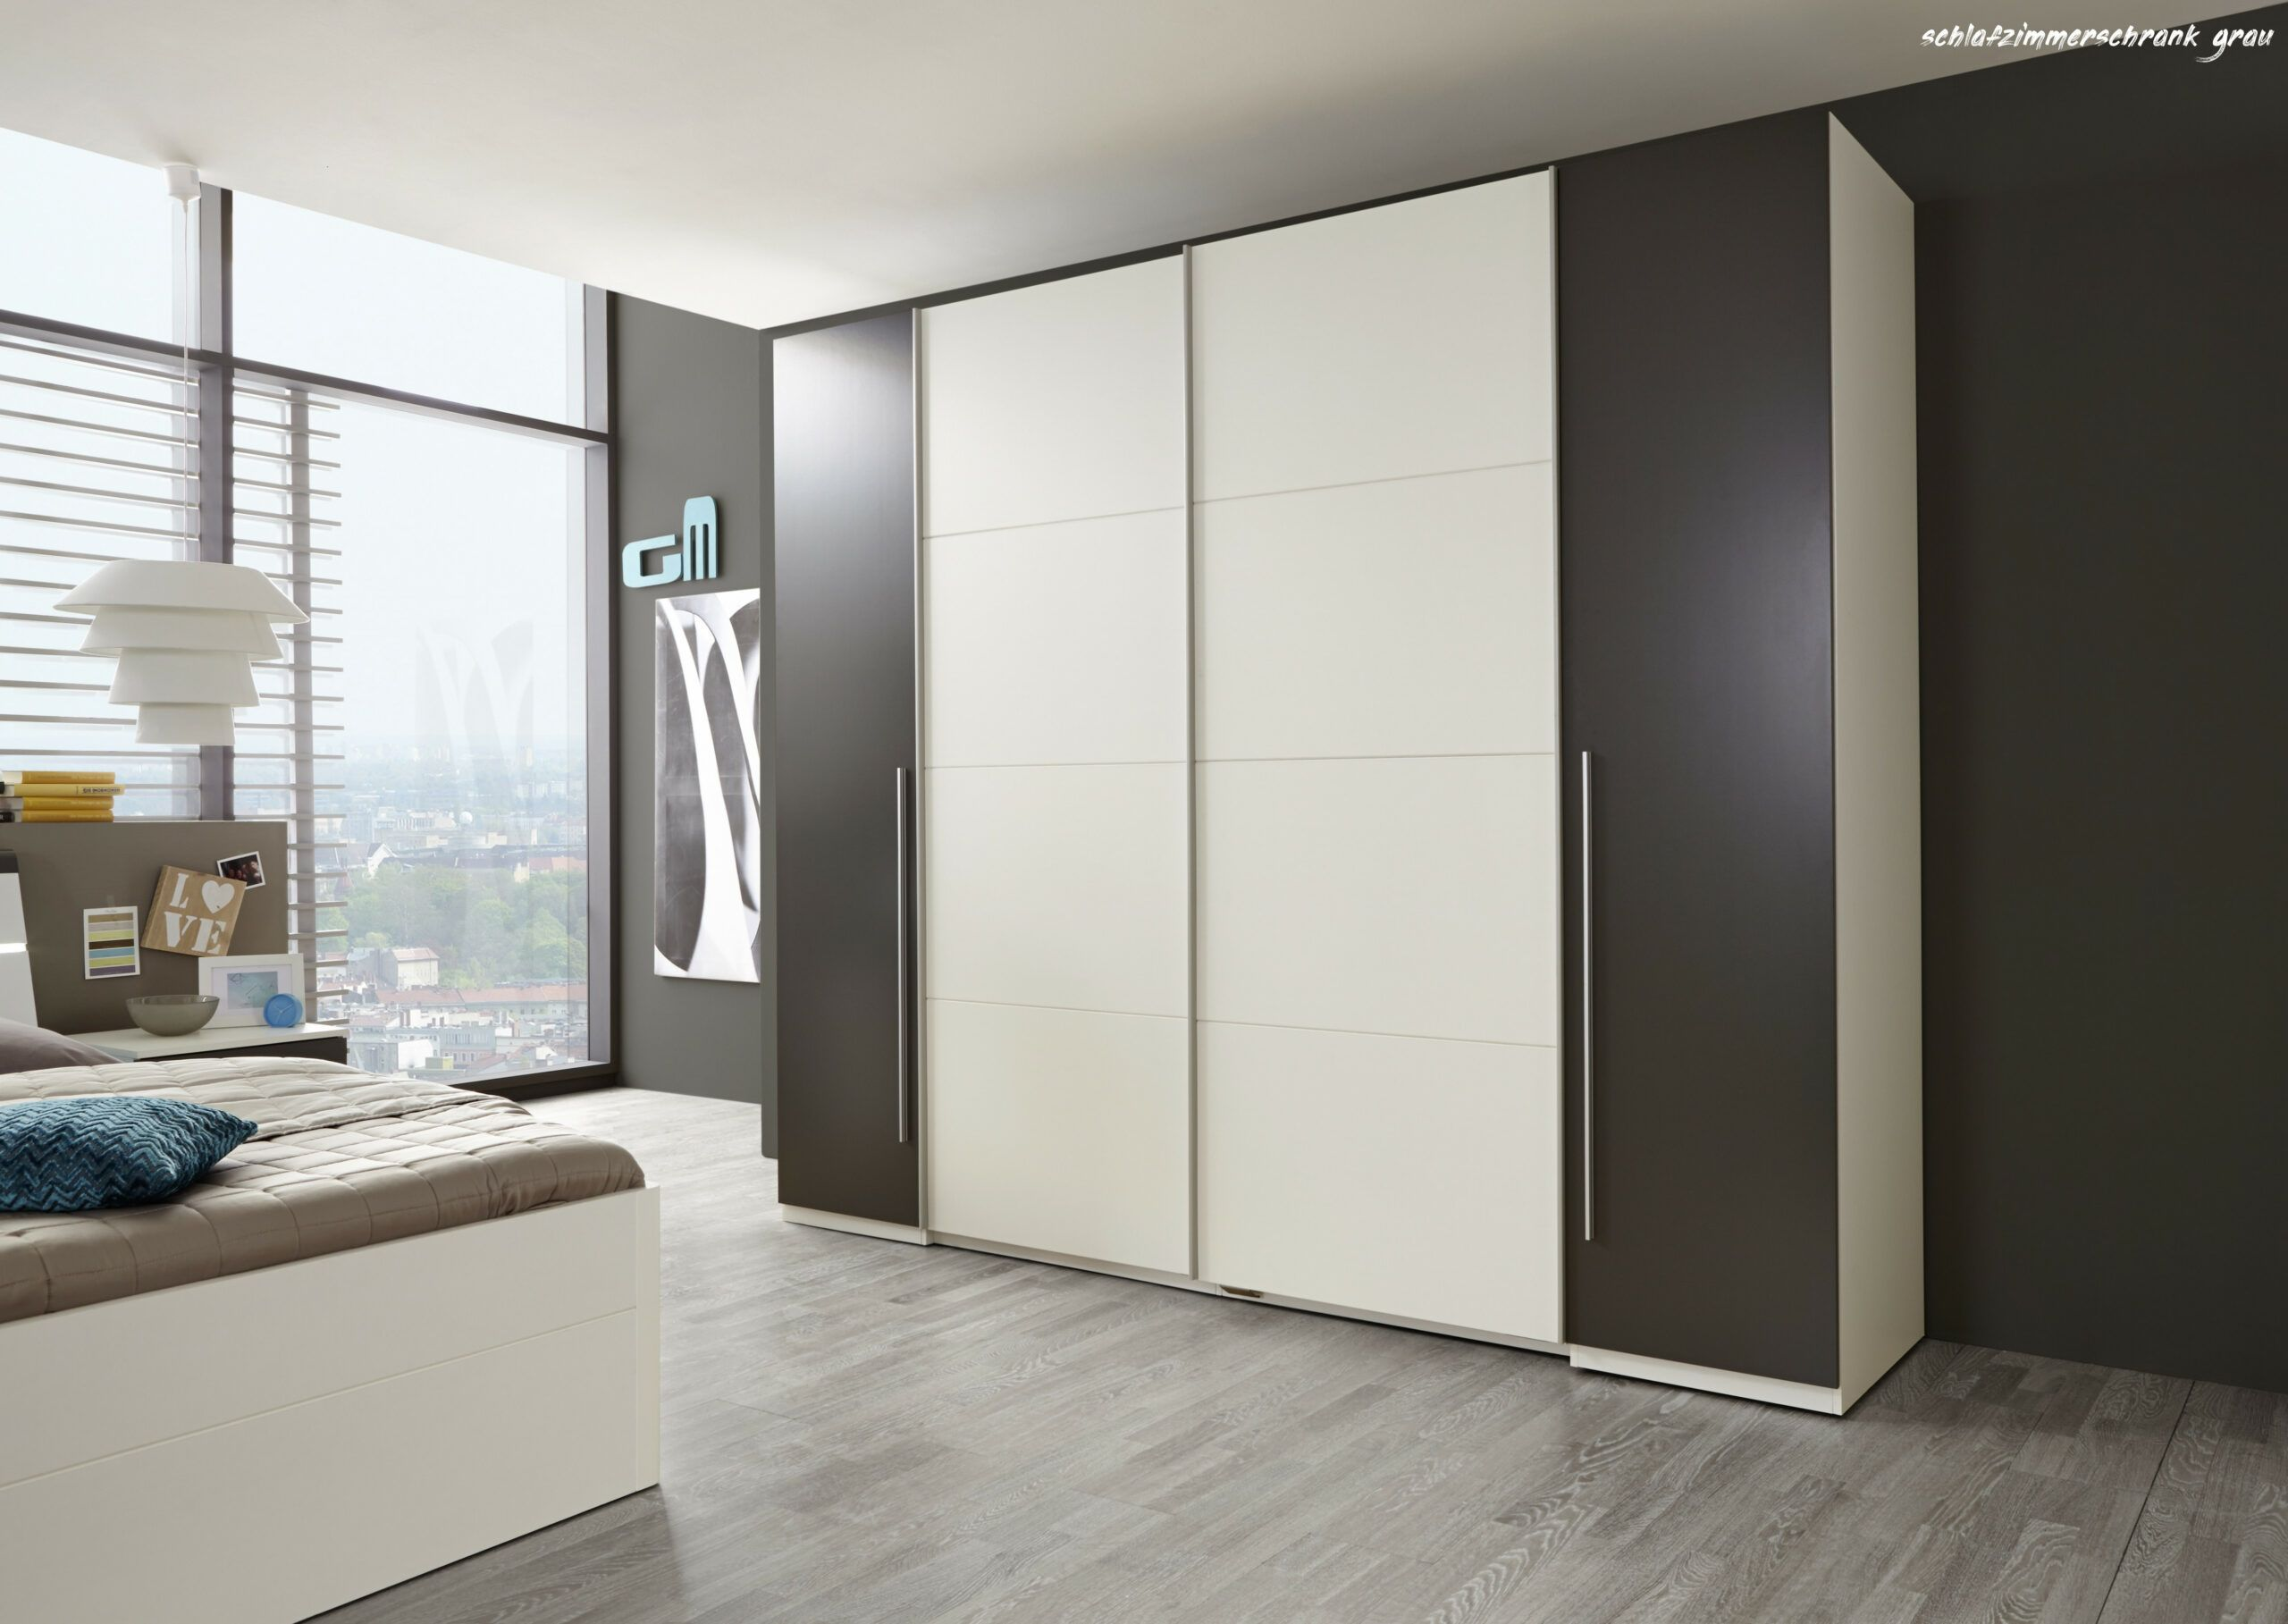 8 Schlafzimmerschrank Grau In 2020 House Plans How To Plan Home